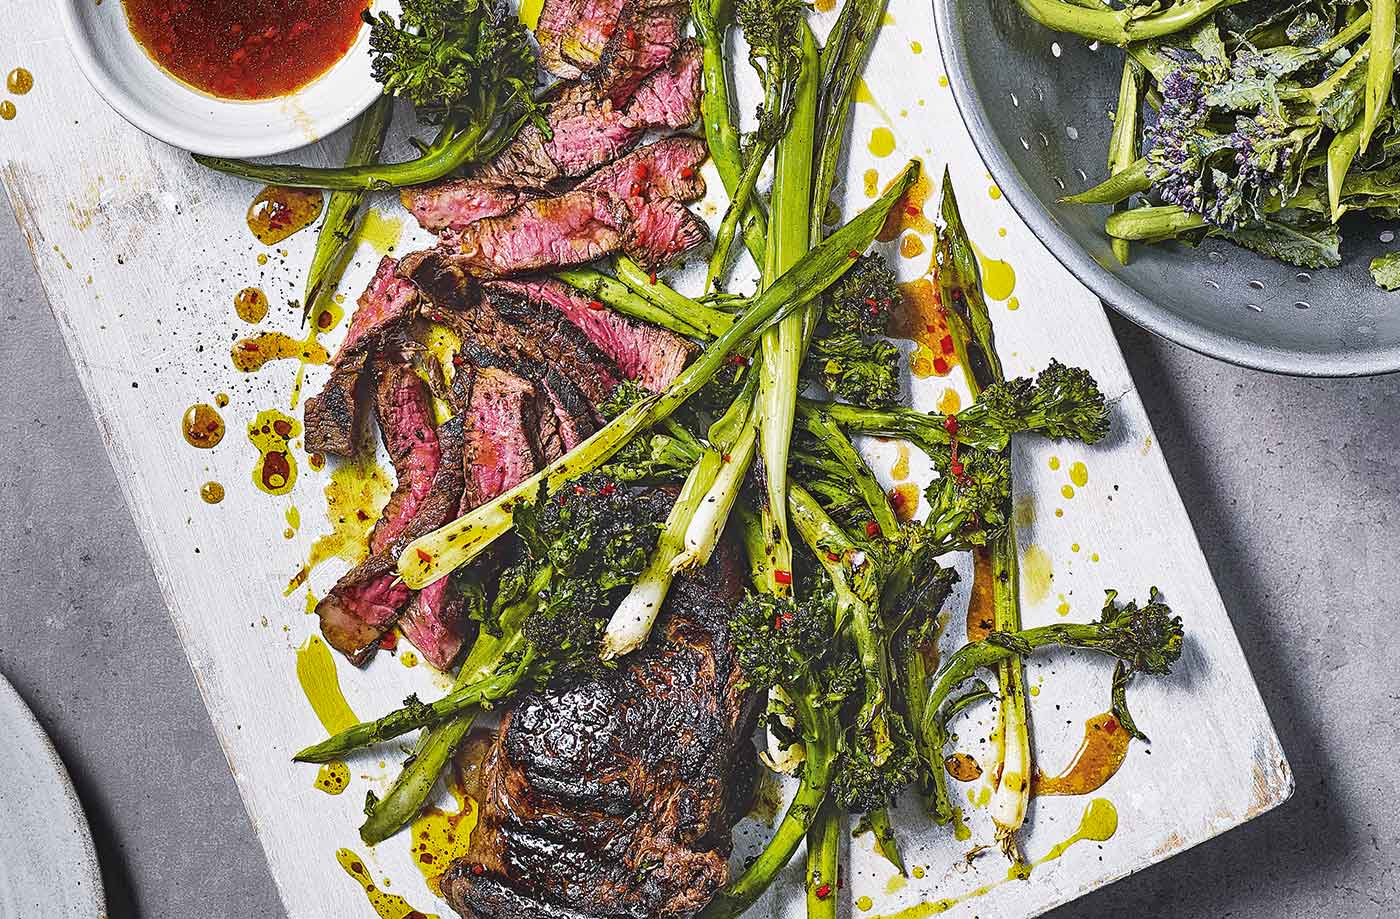 Griddled steak and purple sprouting broccoli with sticky mango sauce recipe